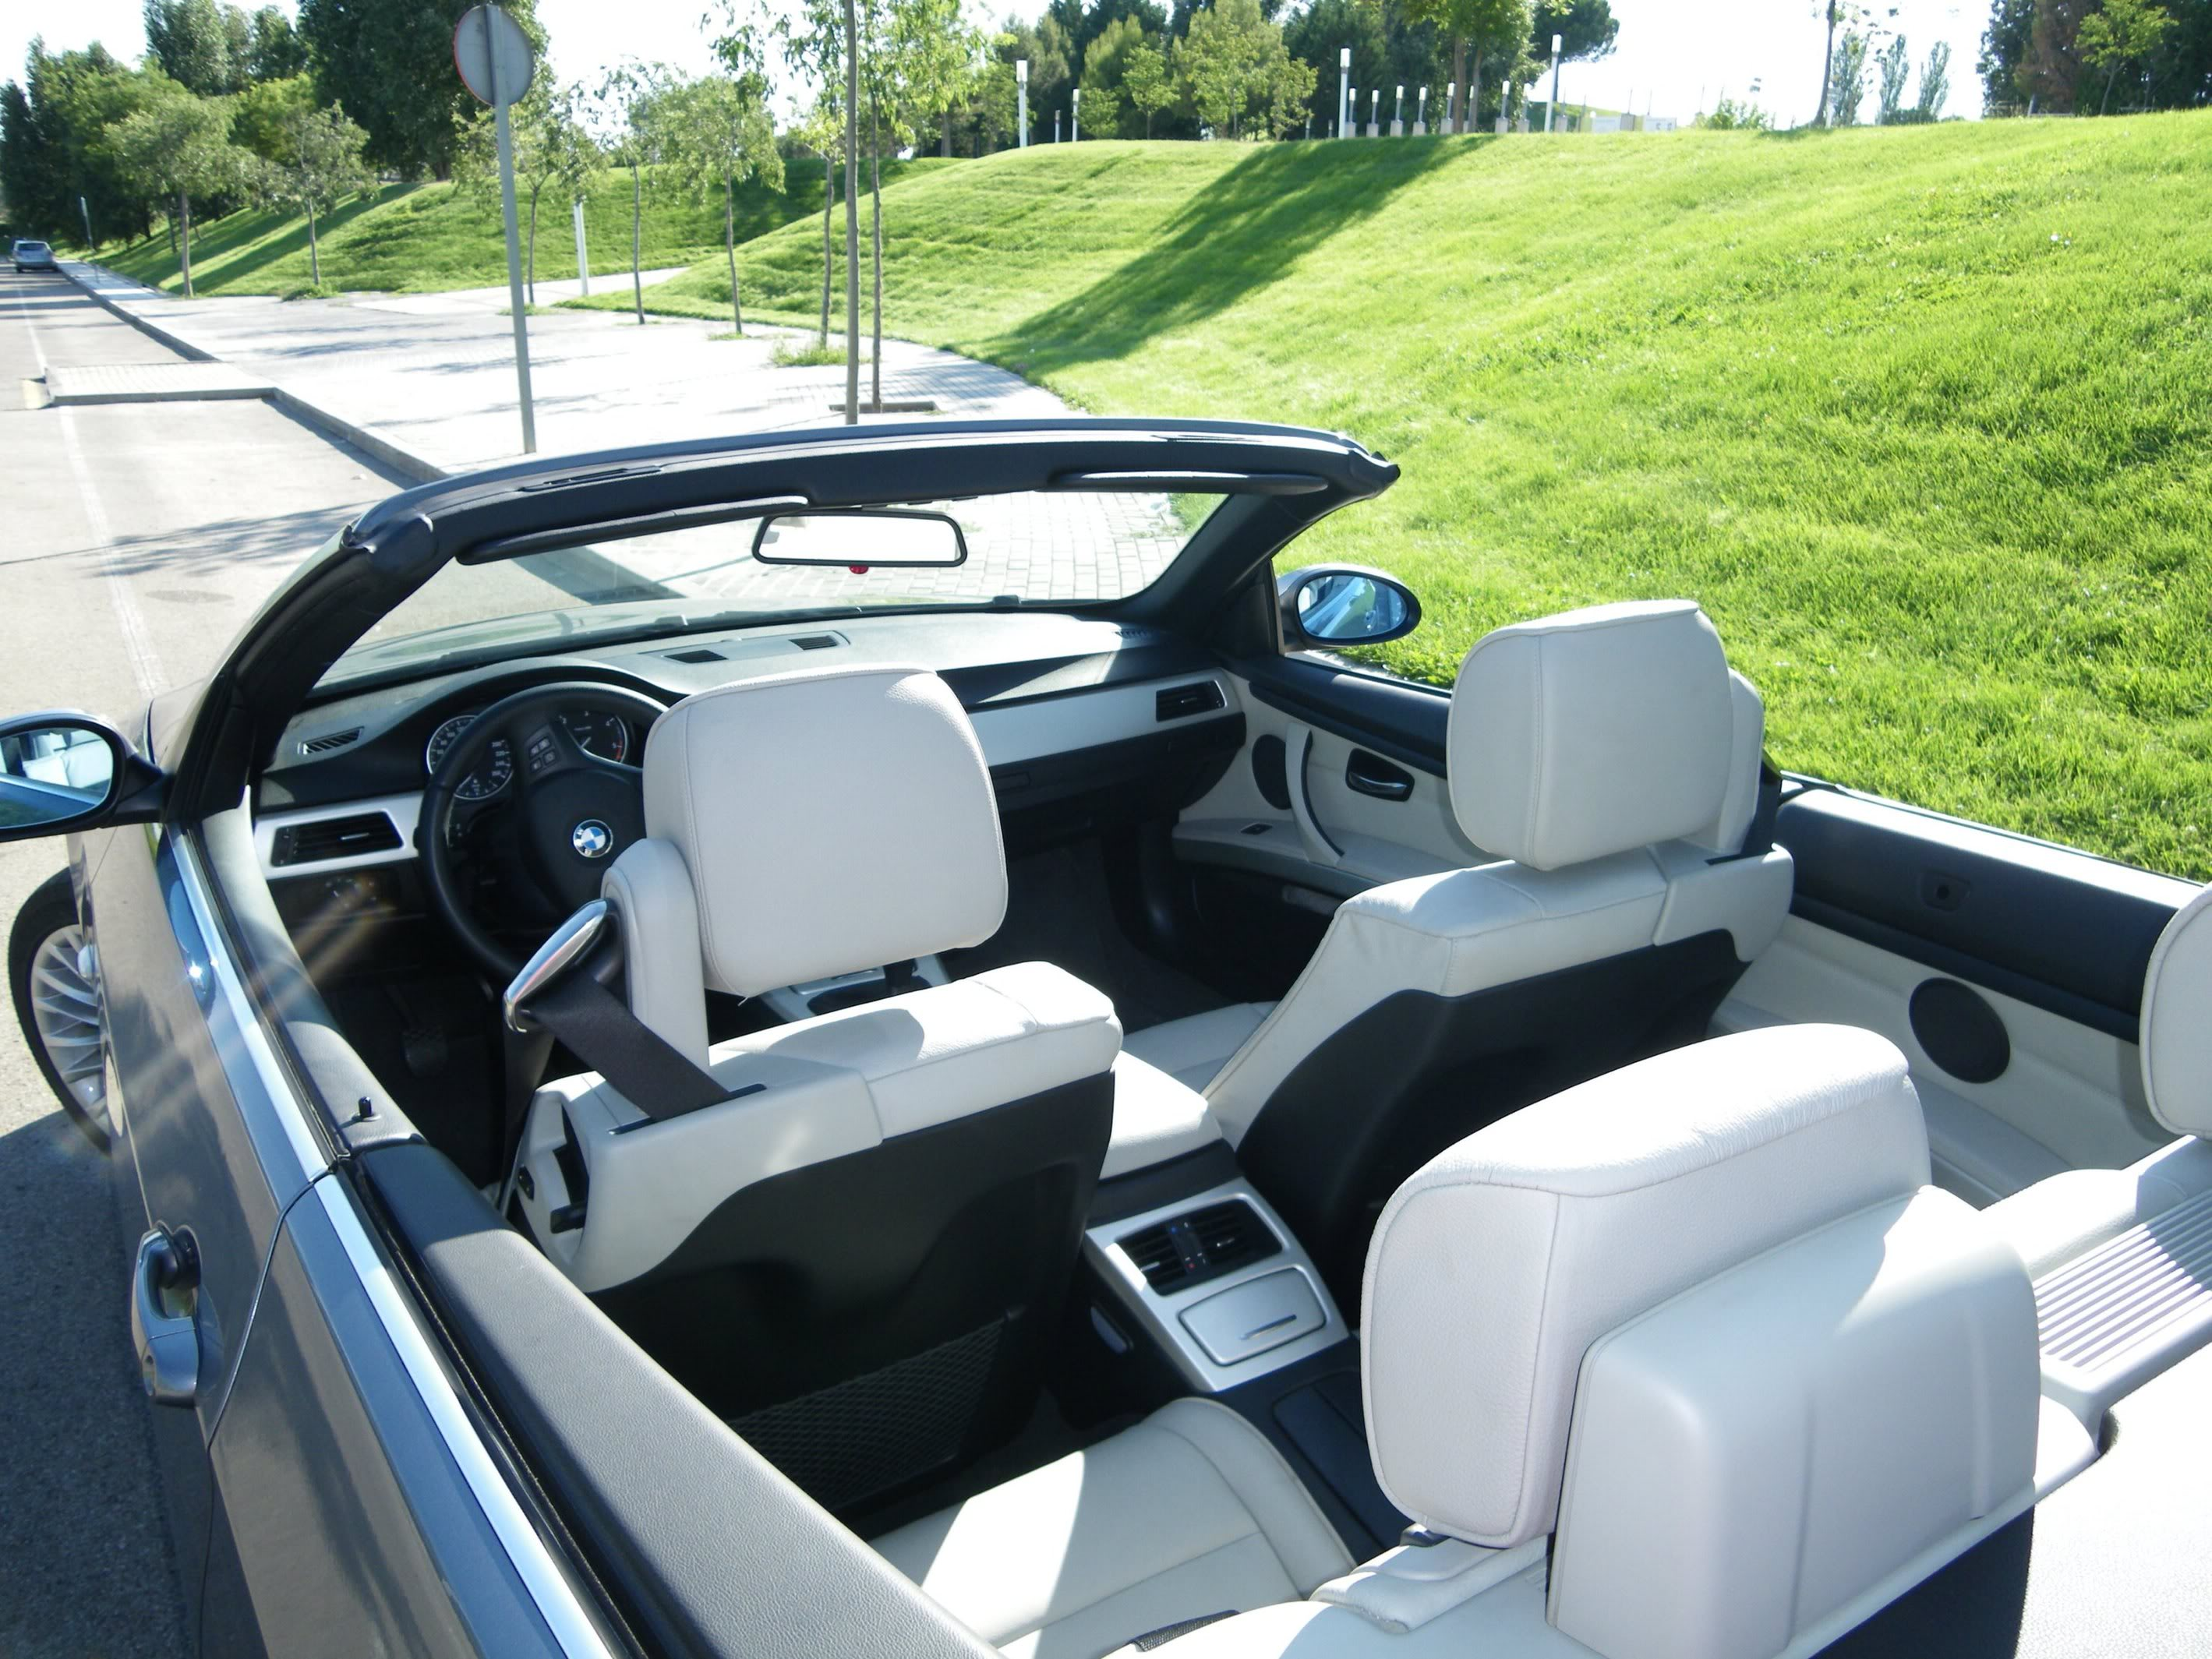 BMW Noticias, BMW Fotos, BMW Videos, BMW Coches - BMW 320d Cabrio,